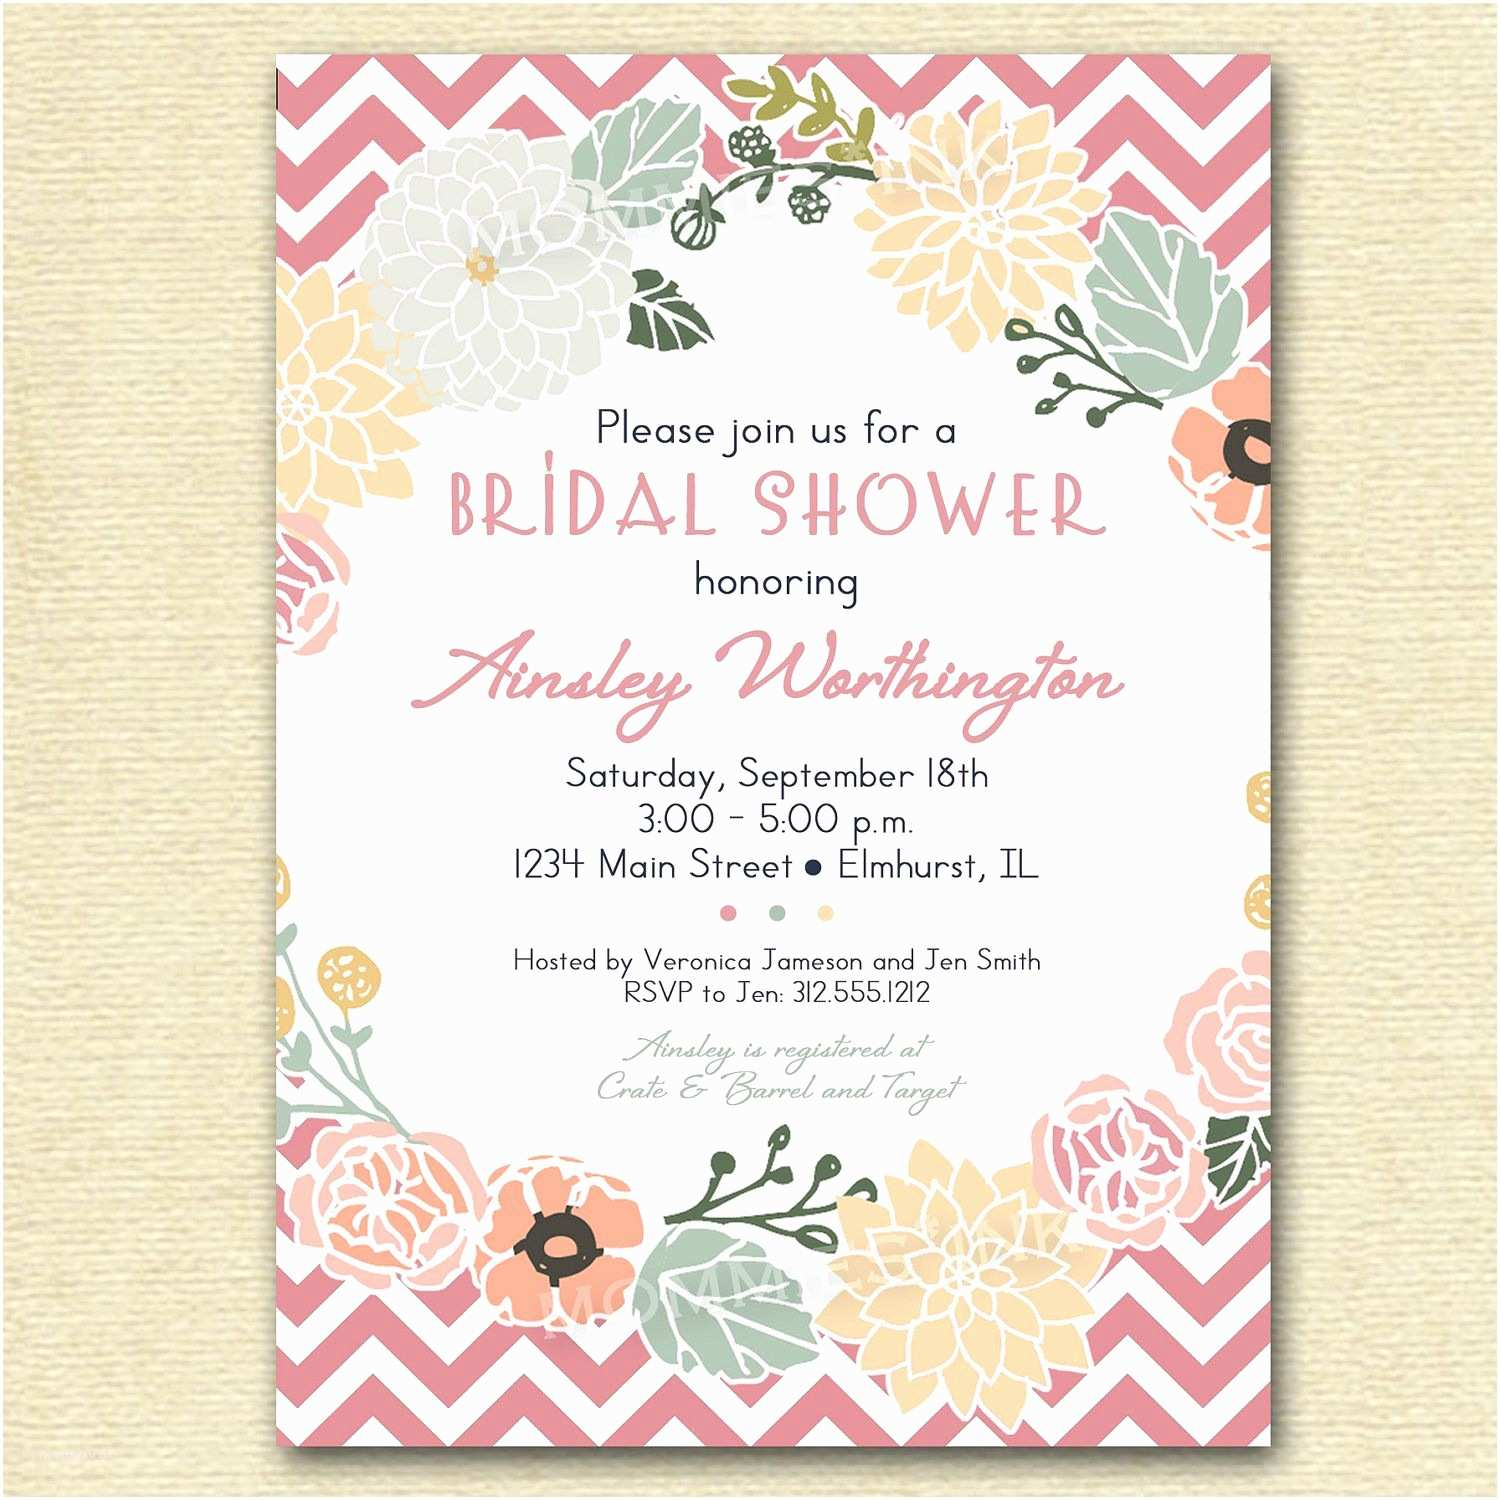 Free Bridal Shower Invitation Templates Vintage Flower Wreath and Pink Chevron Bridal Shower